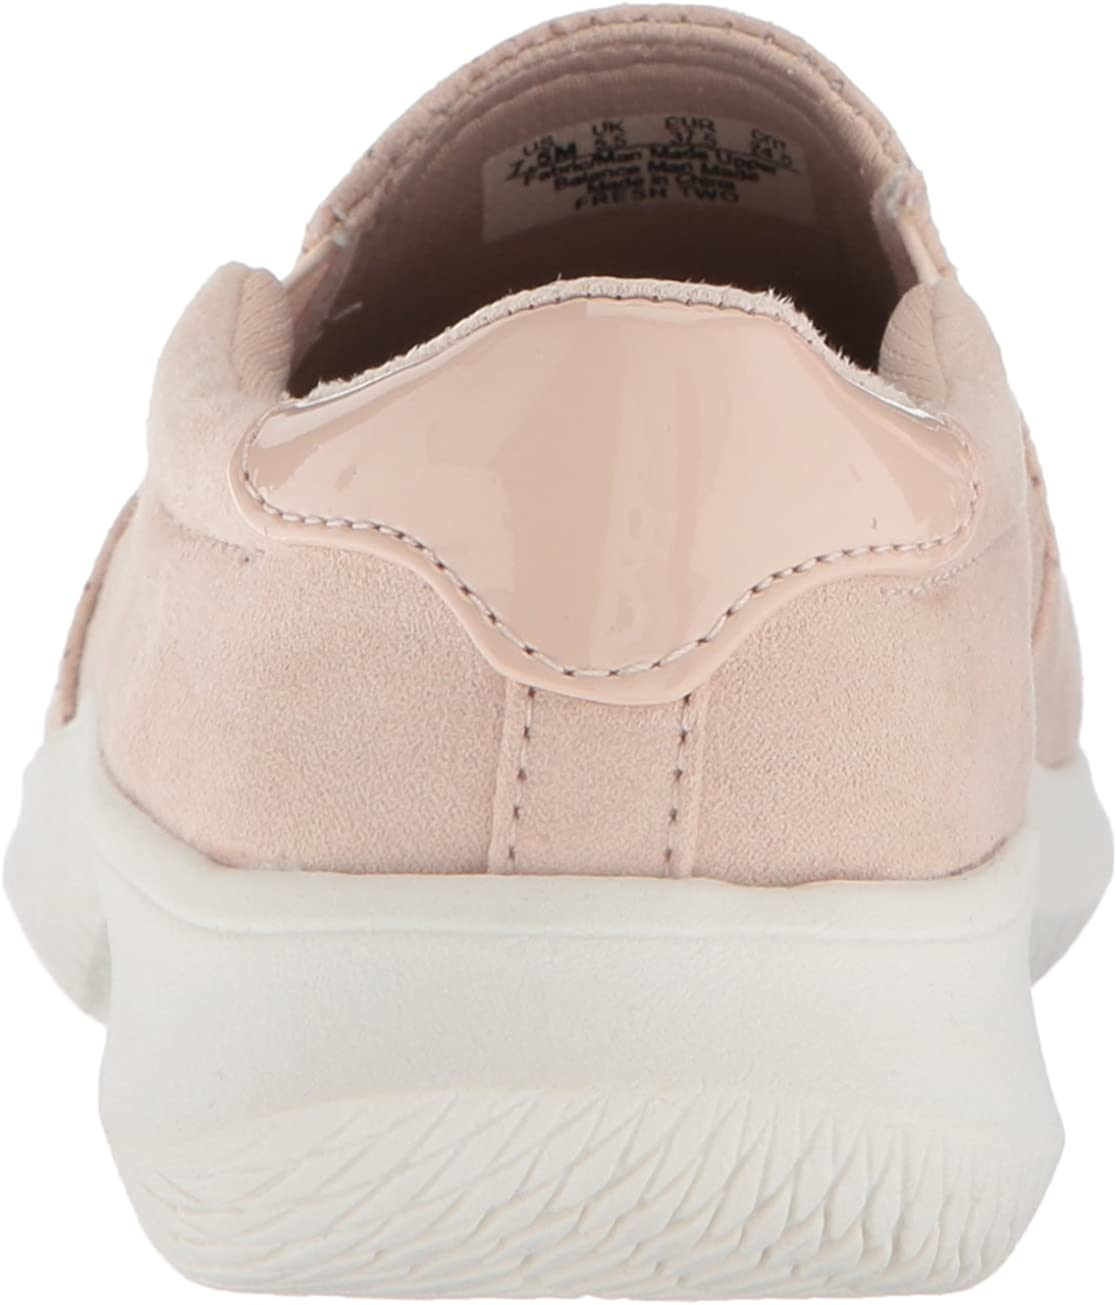 Dr Scholls Womens Fresh Two Slip-On Moc Toe Sneakers Blush Size 9 M US